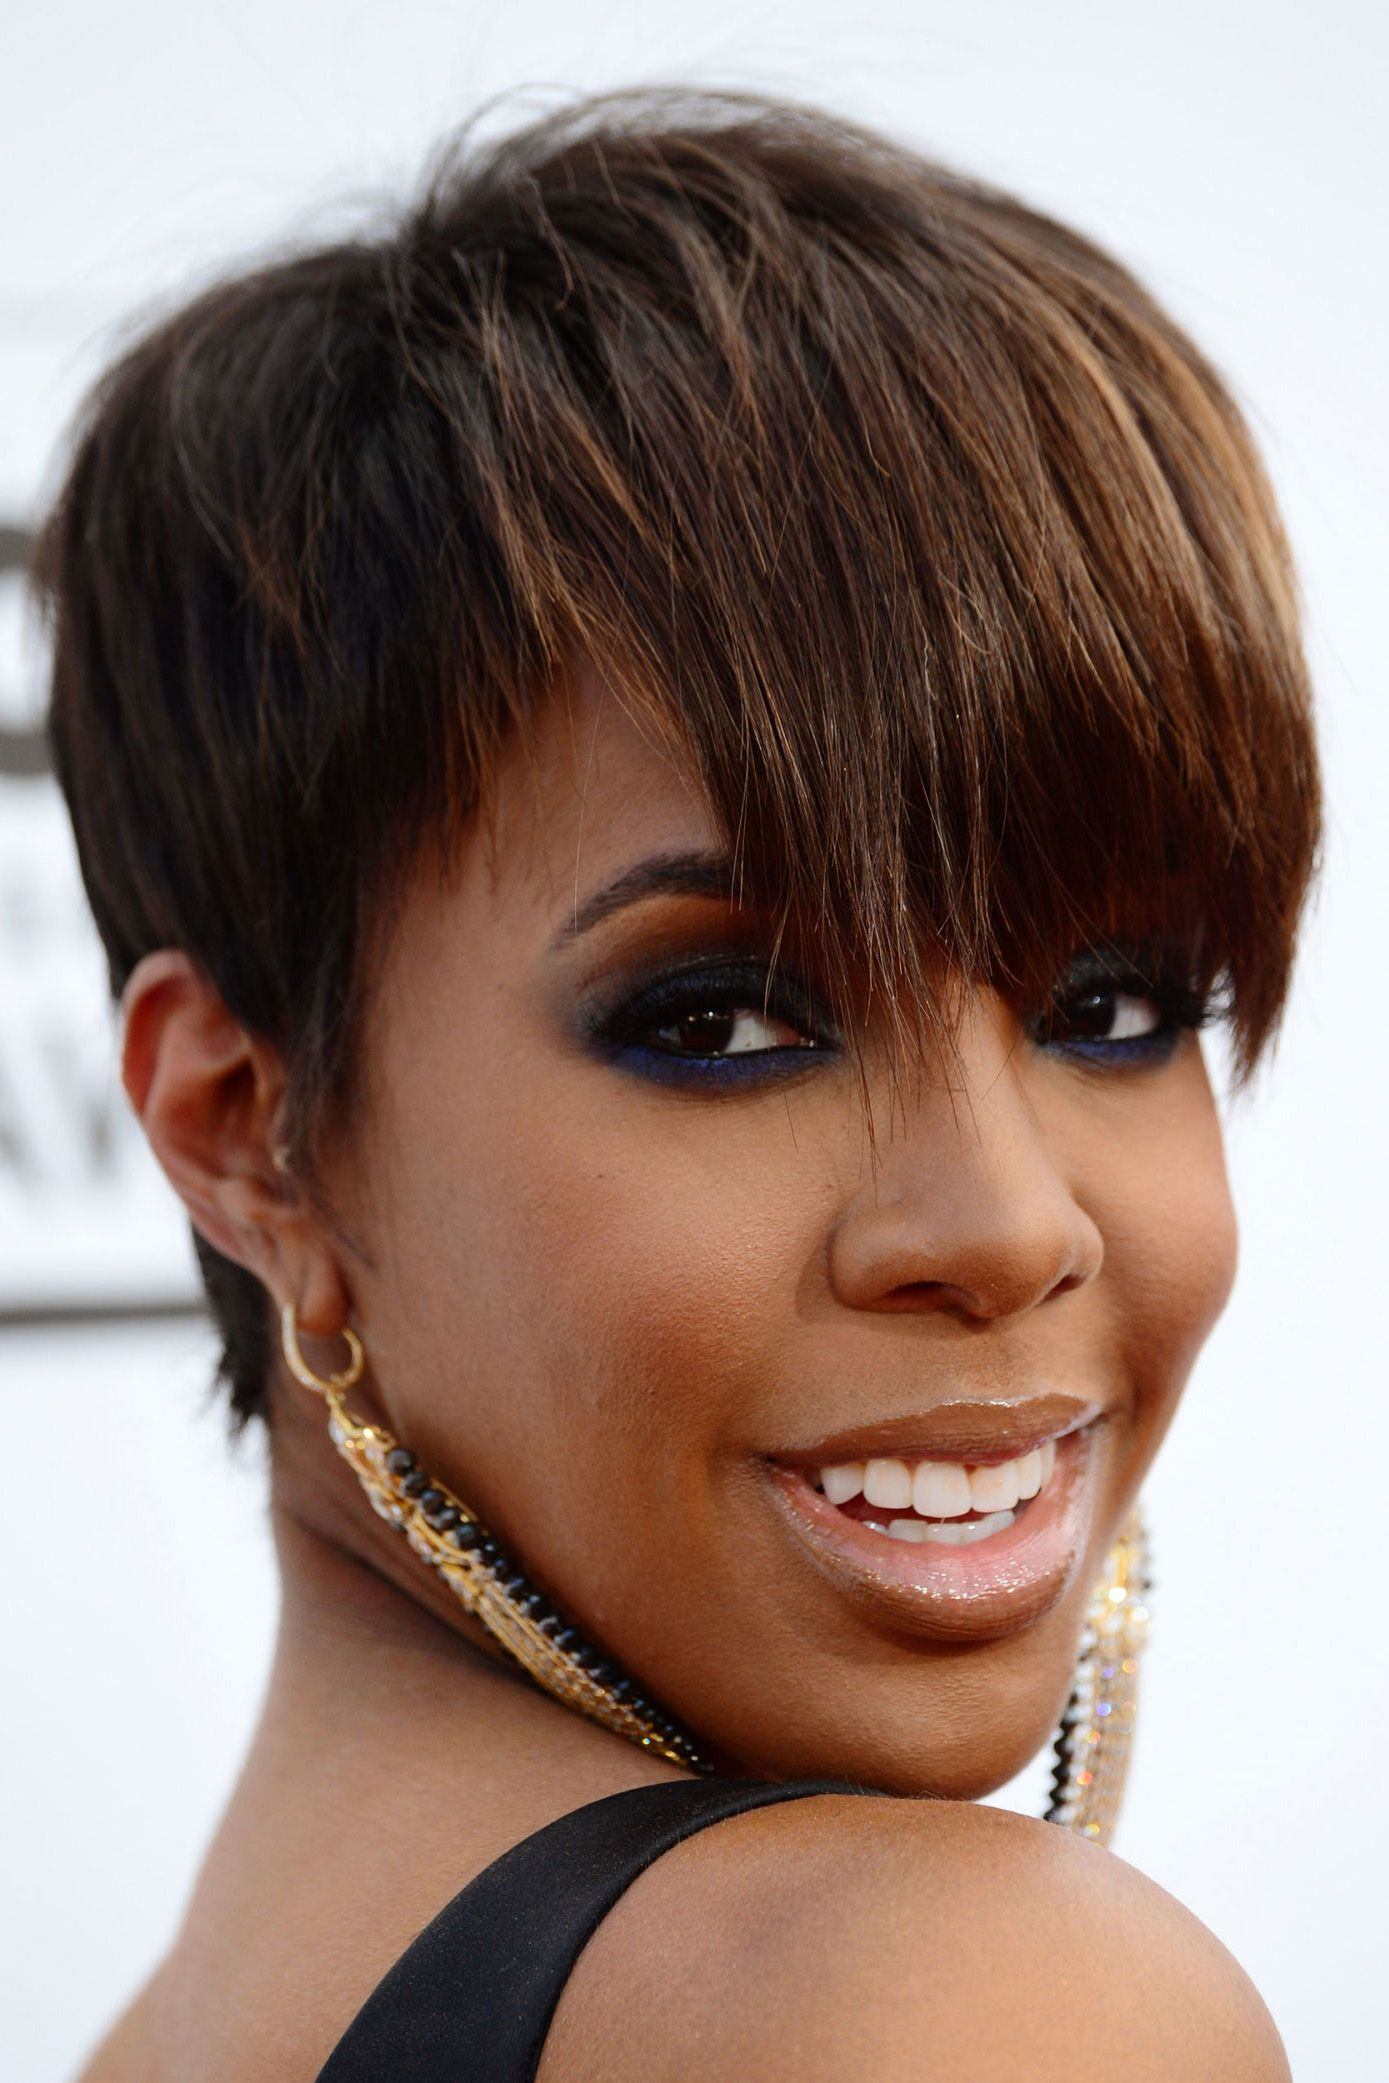 Cropped-Hair-with-Fringe Classy and Charming Hairstyles for Wedding Guest